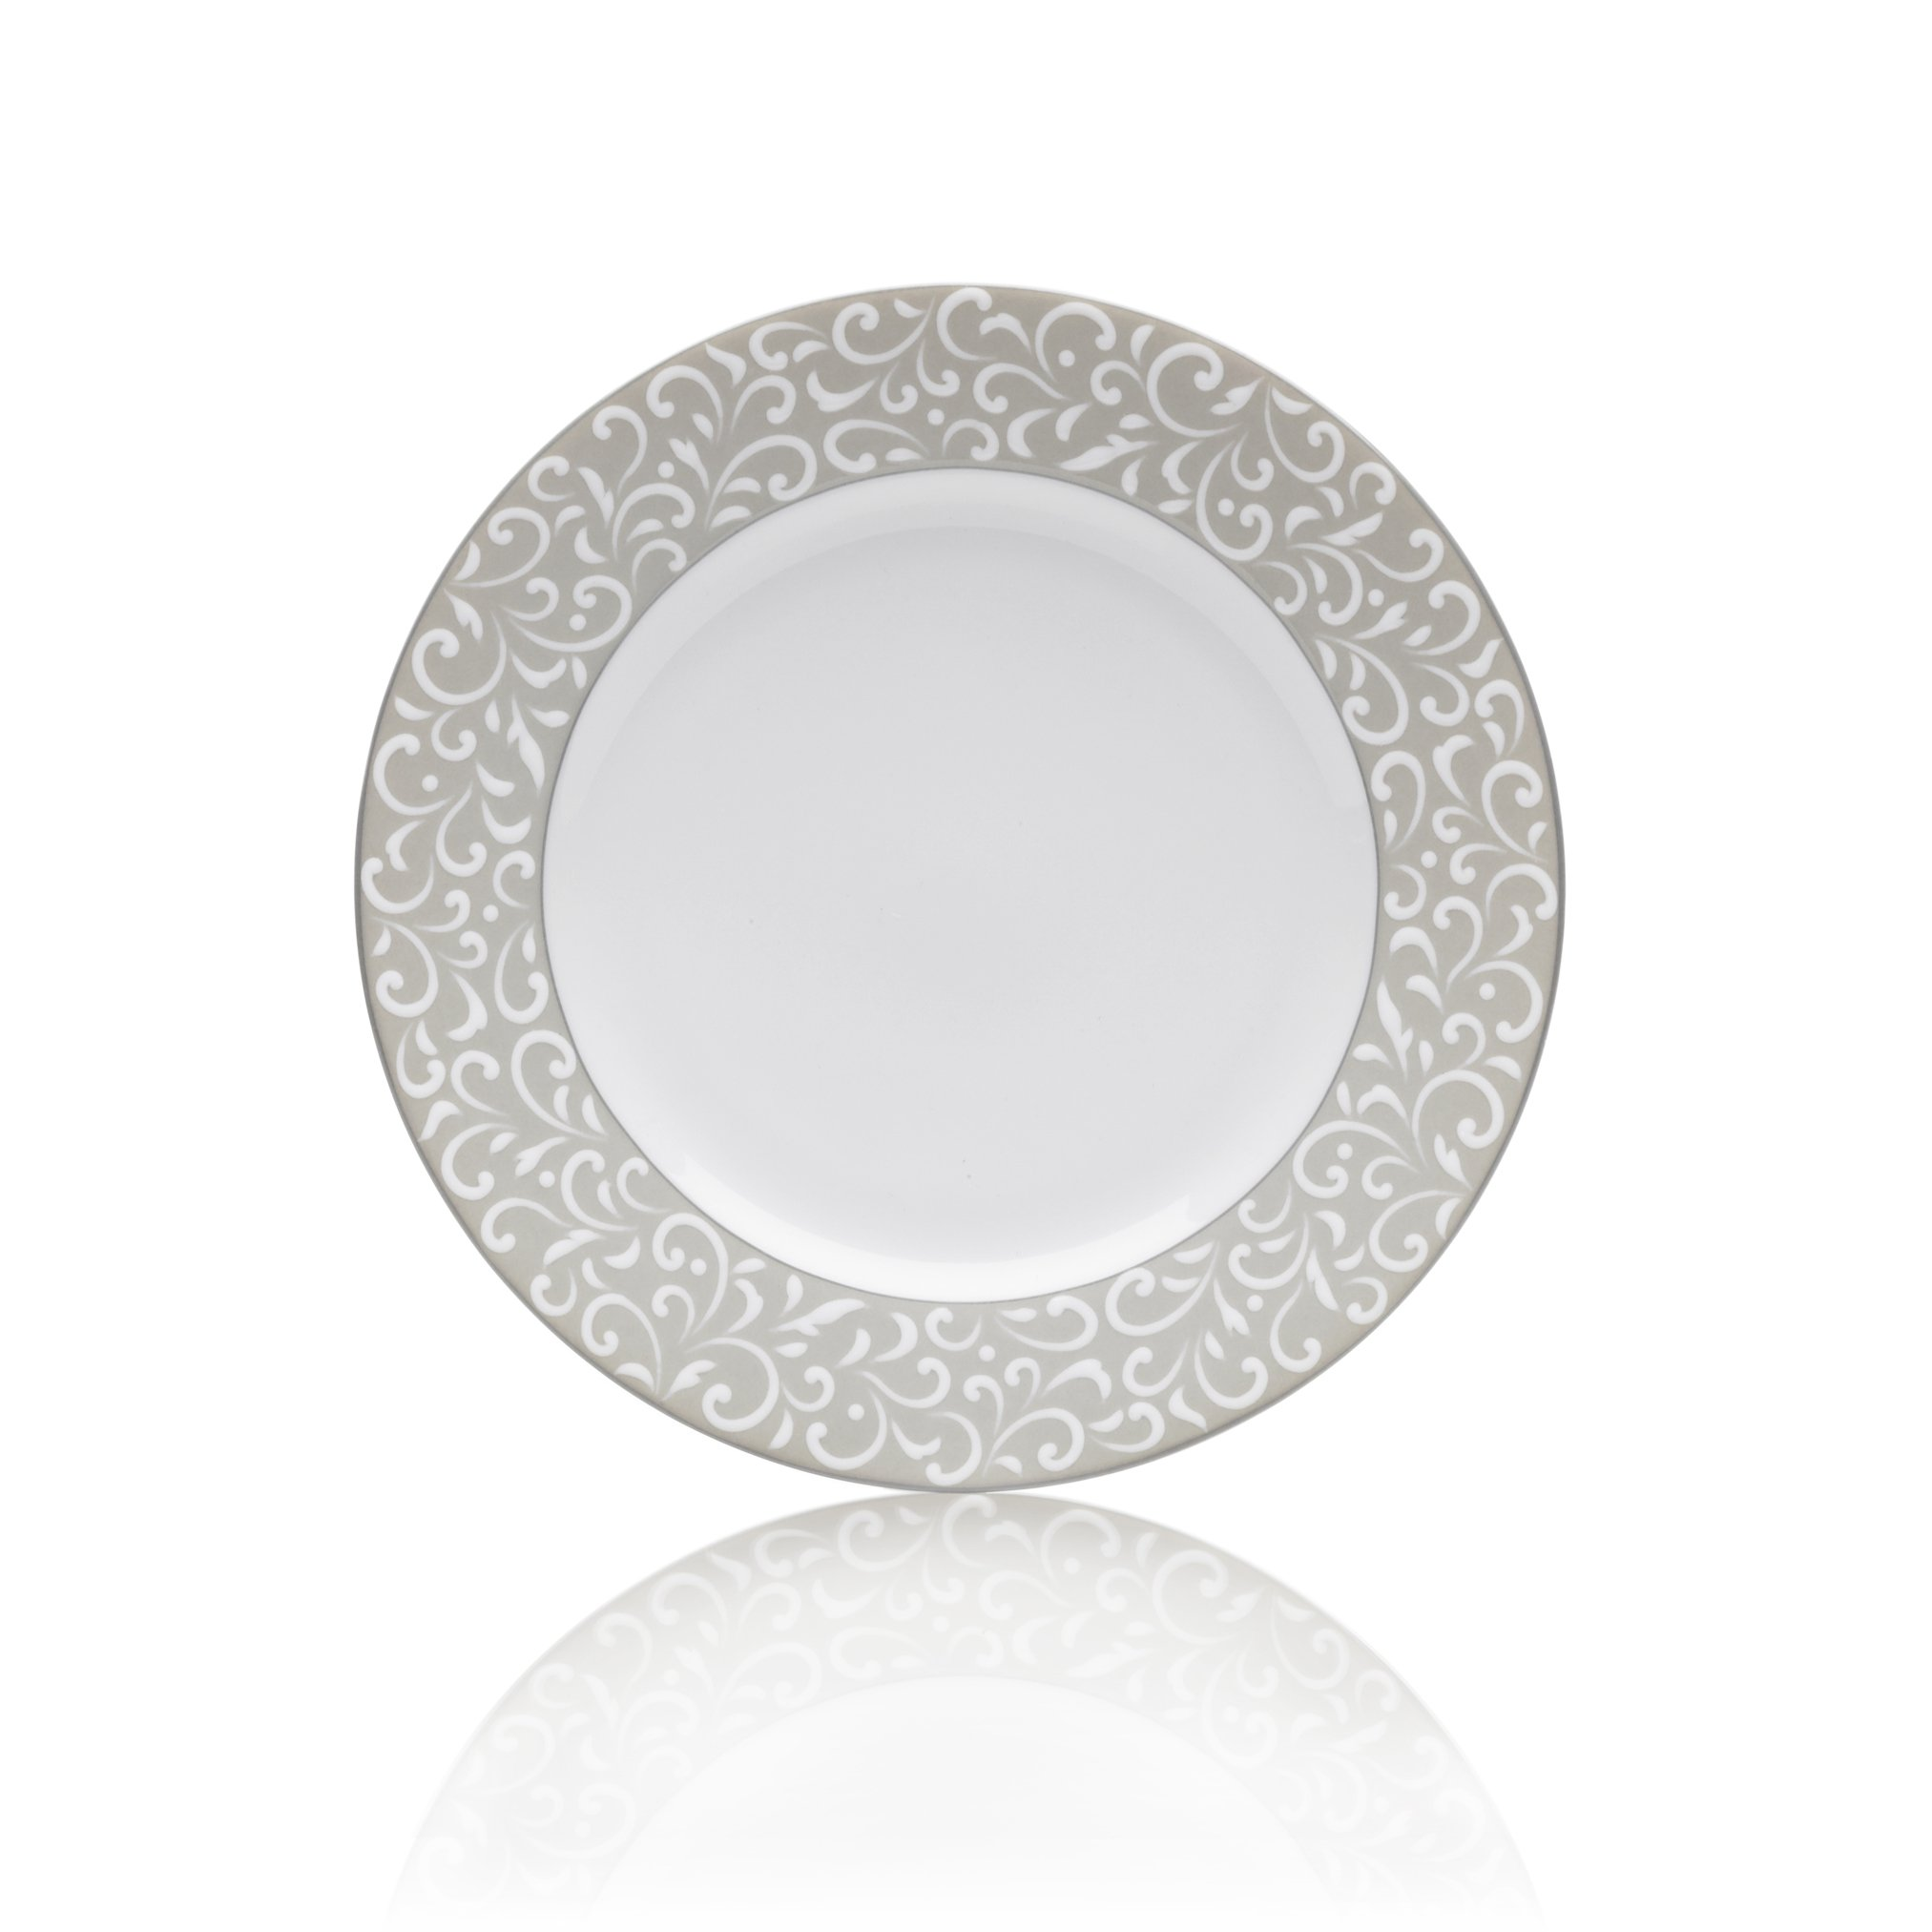 Mikasa Grace 6-3/4-Inch Bread and Butter Plate, White